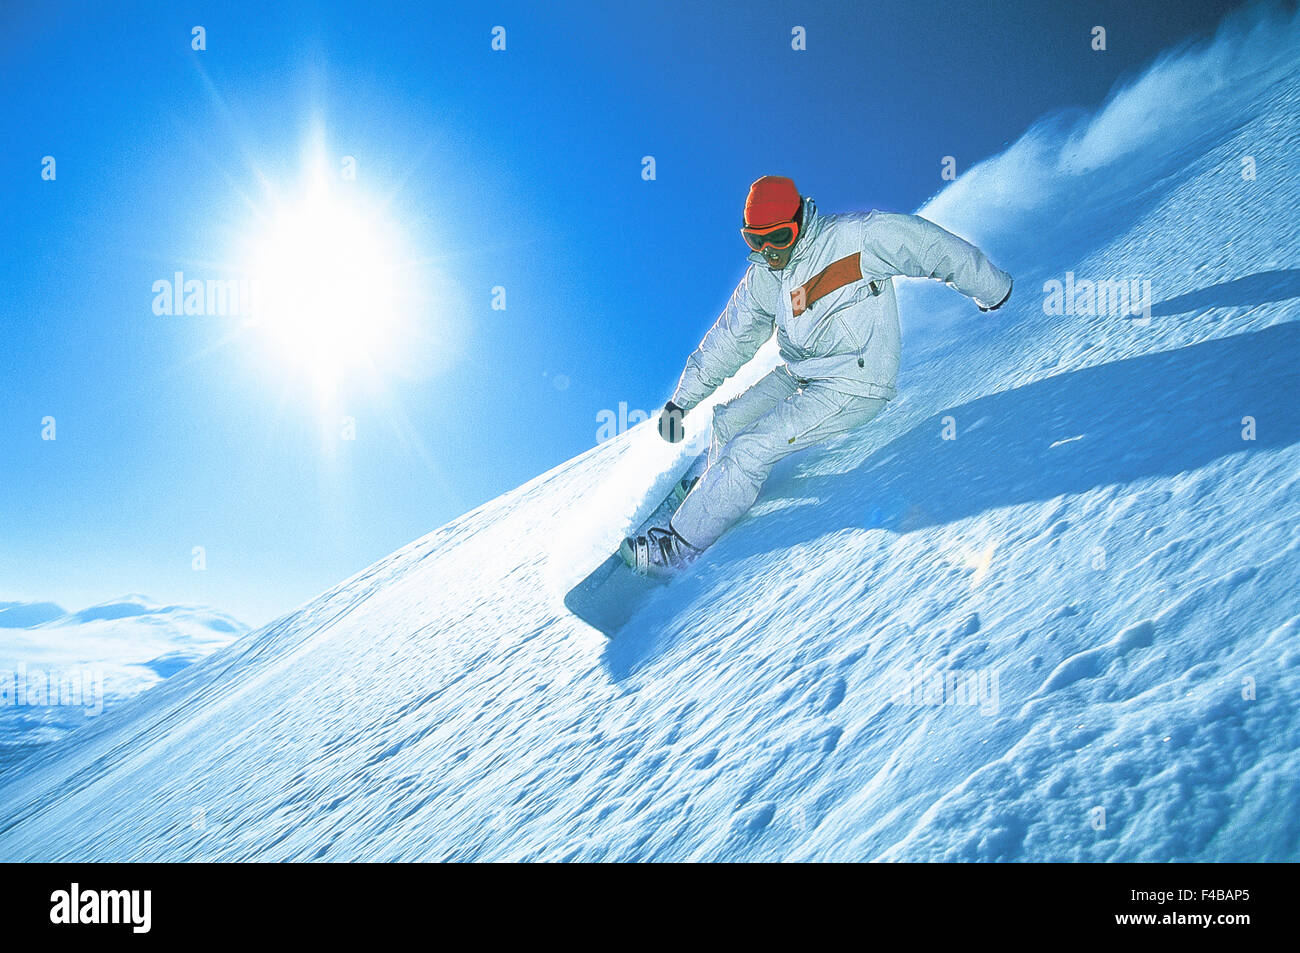 Abisko activity blue catalogue 2 clear sky color image downhill skiing horizontal Lapland leisure lifestyle loose Stock Photo